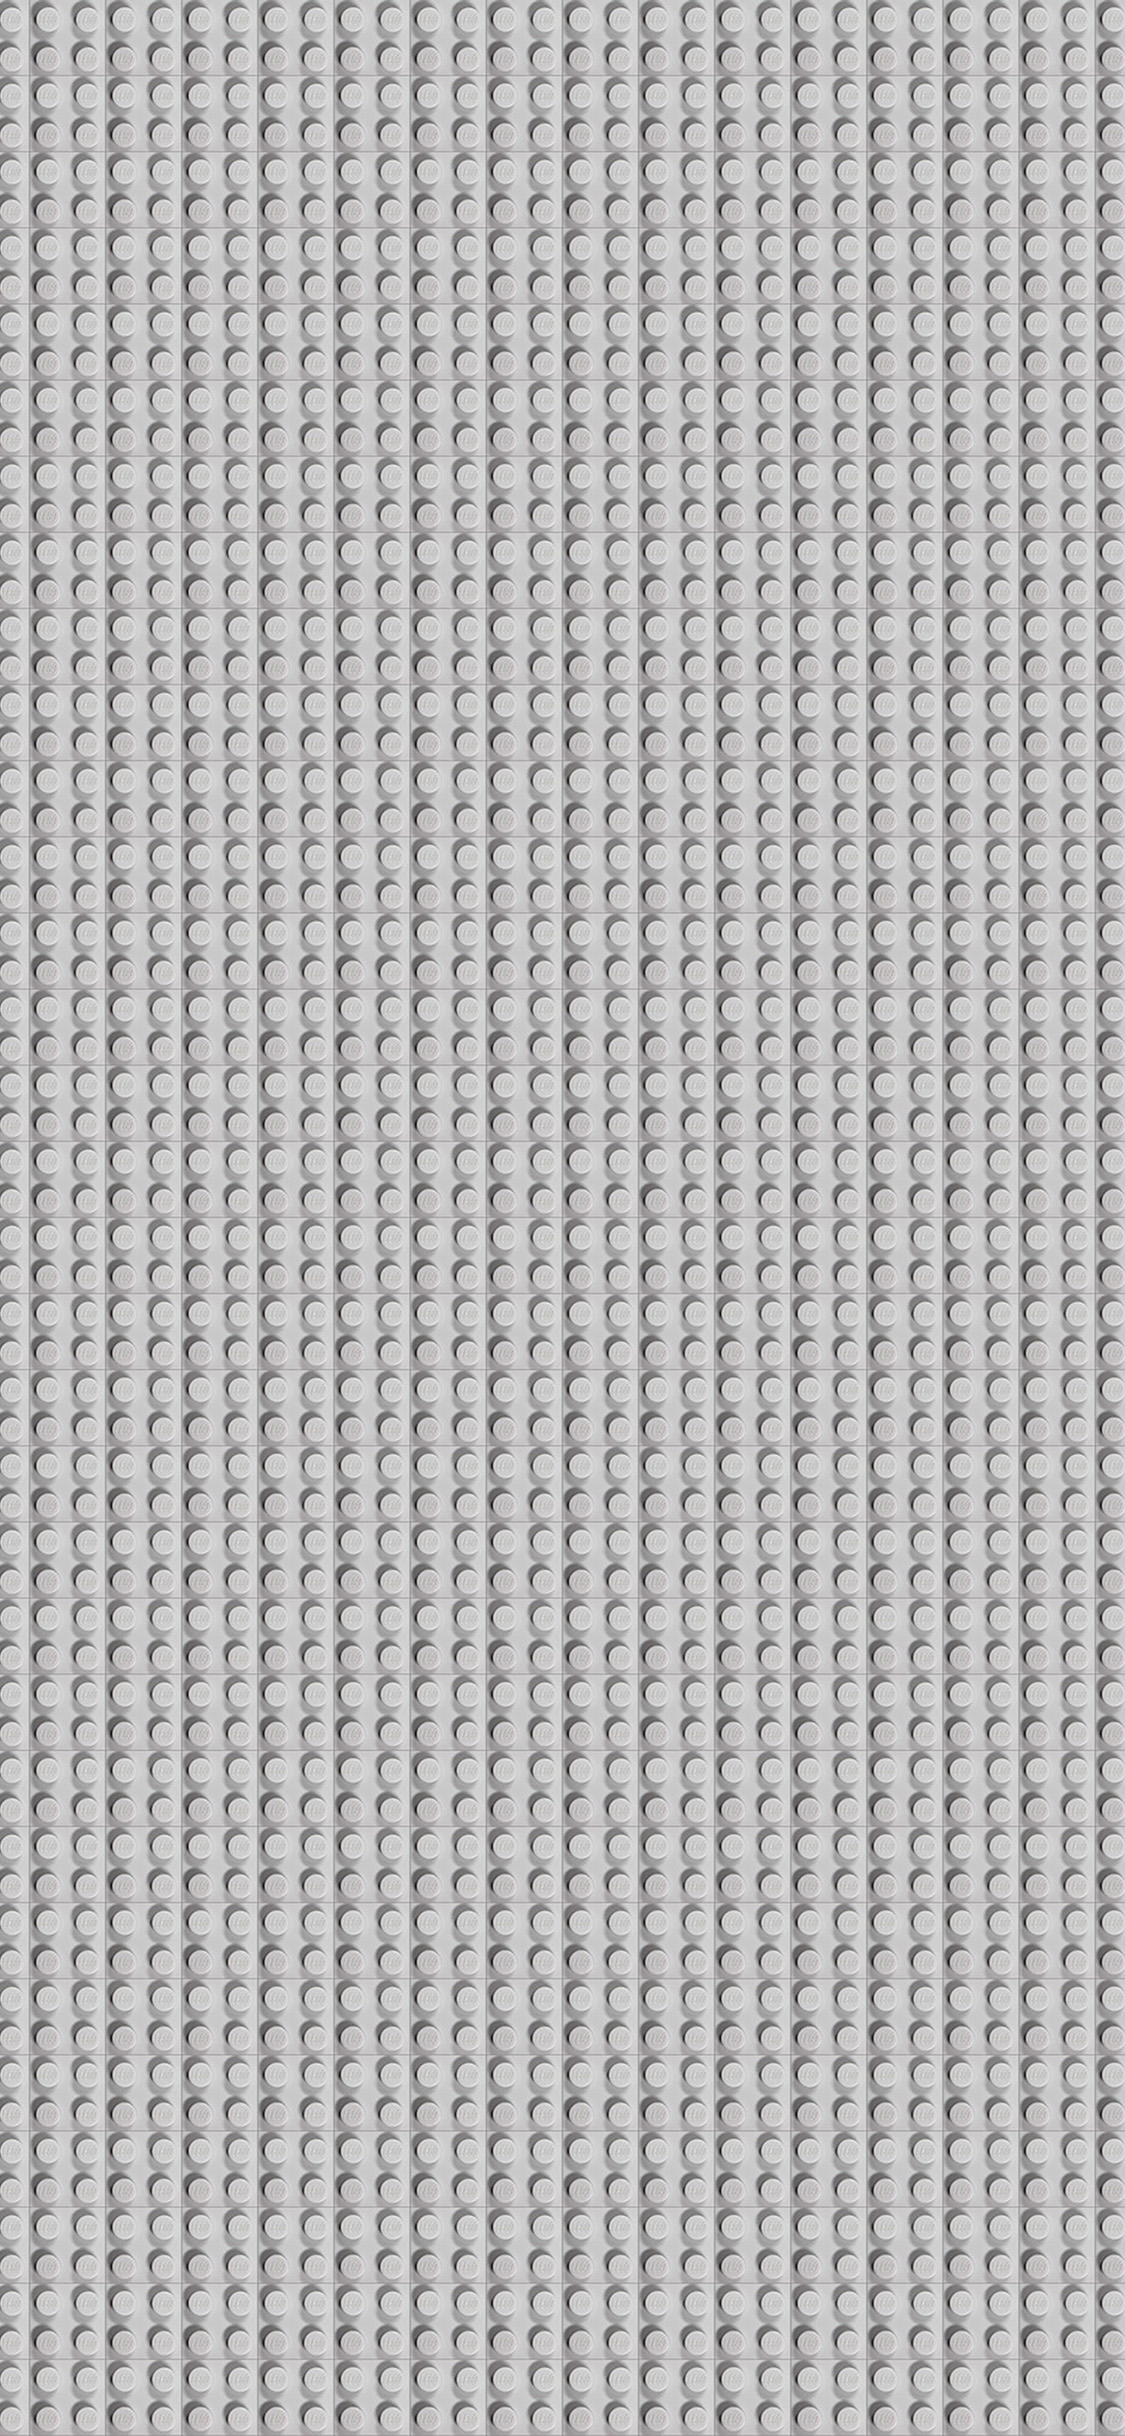 iPhonexpapers.com-Apple-iPhone-wallpaper-wb37-lego-white-pattern-background